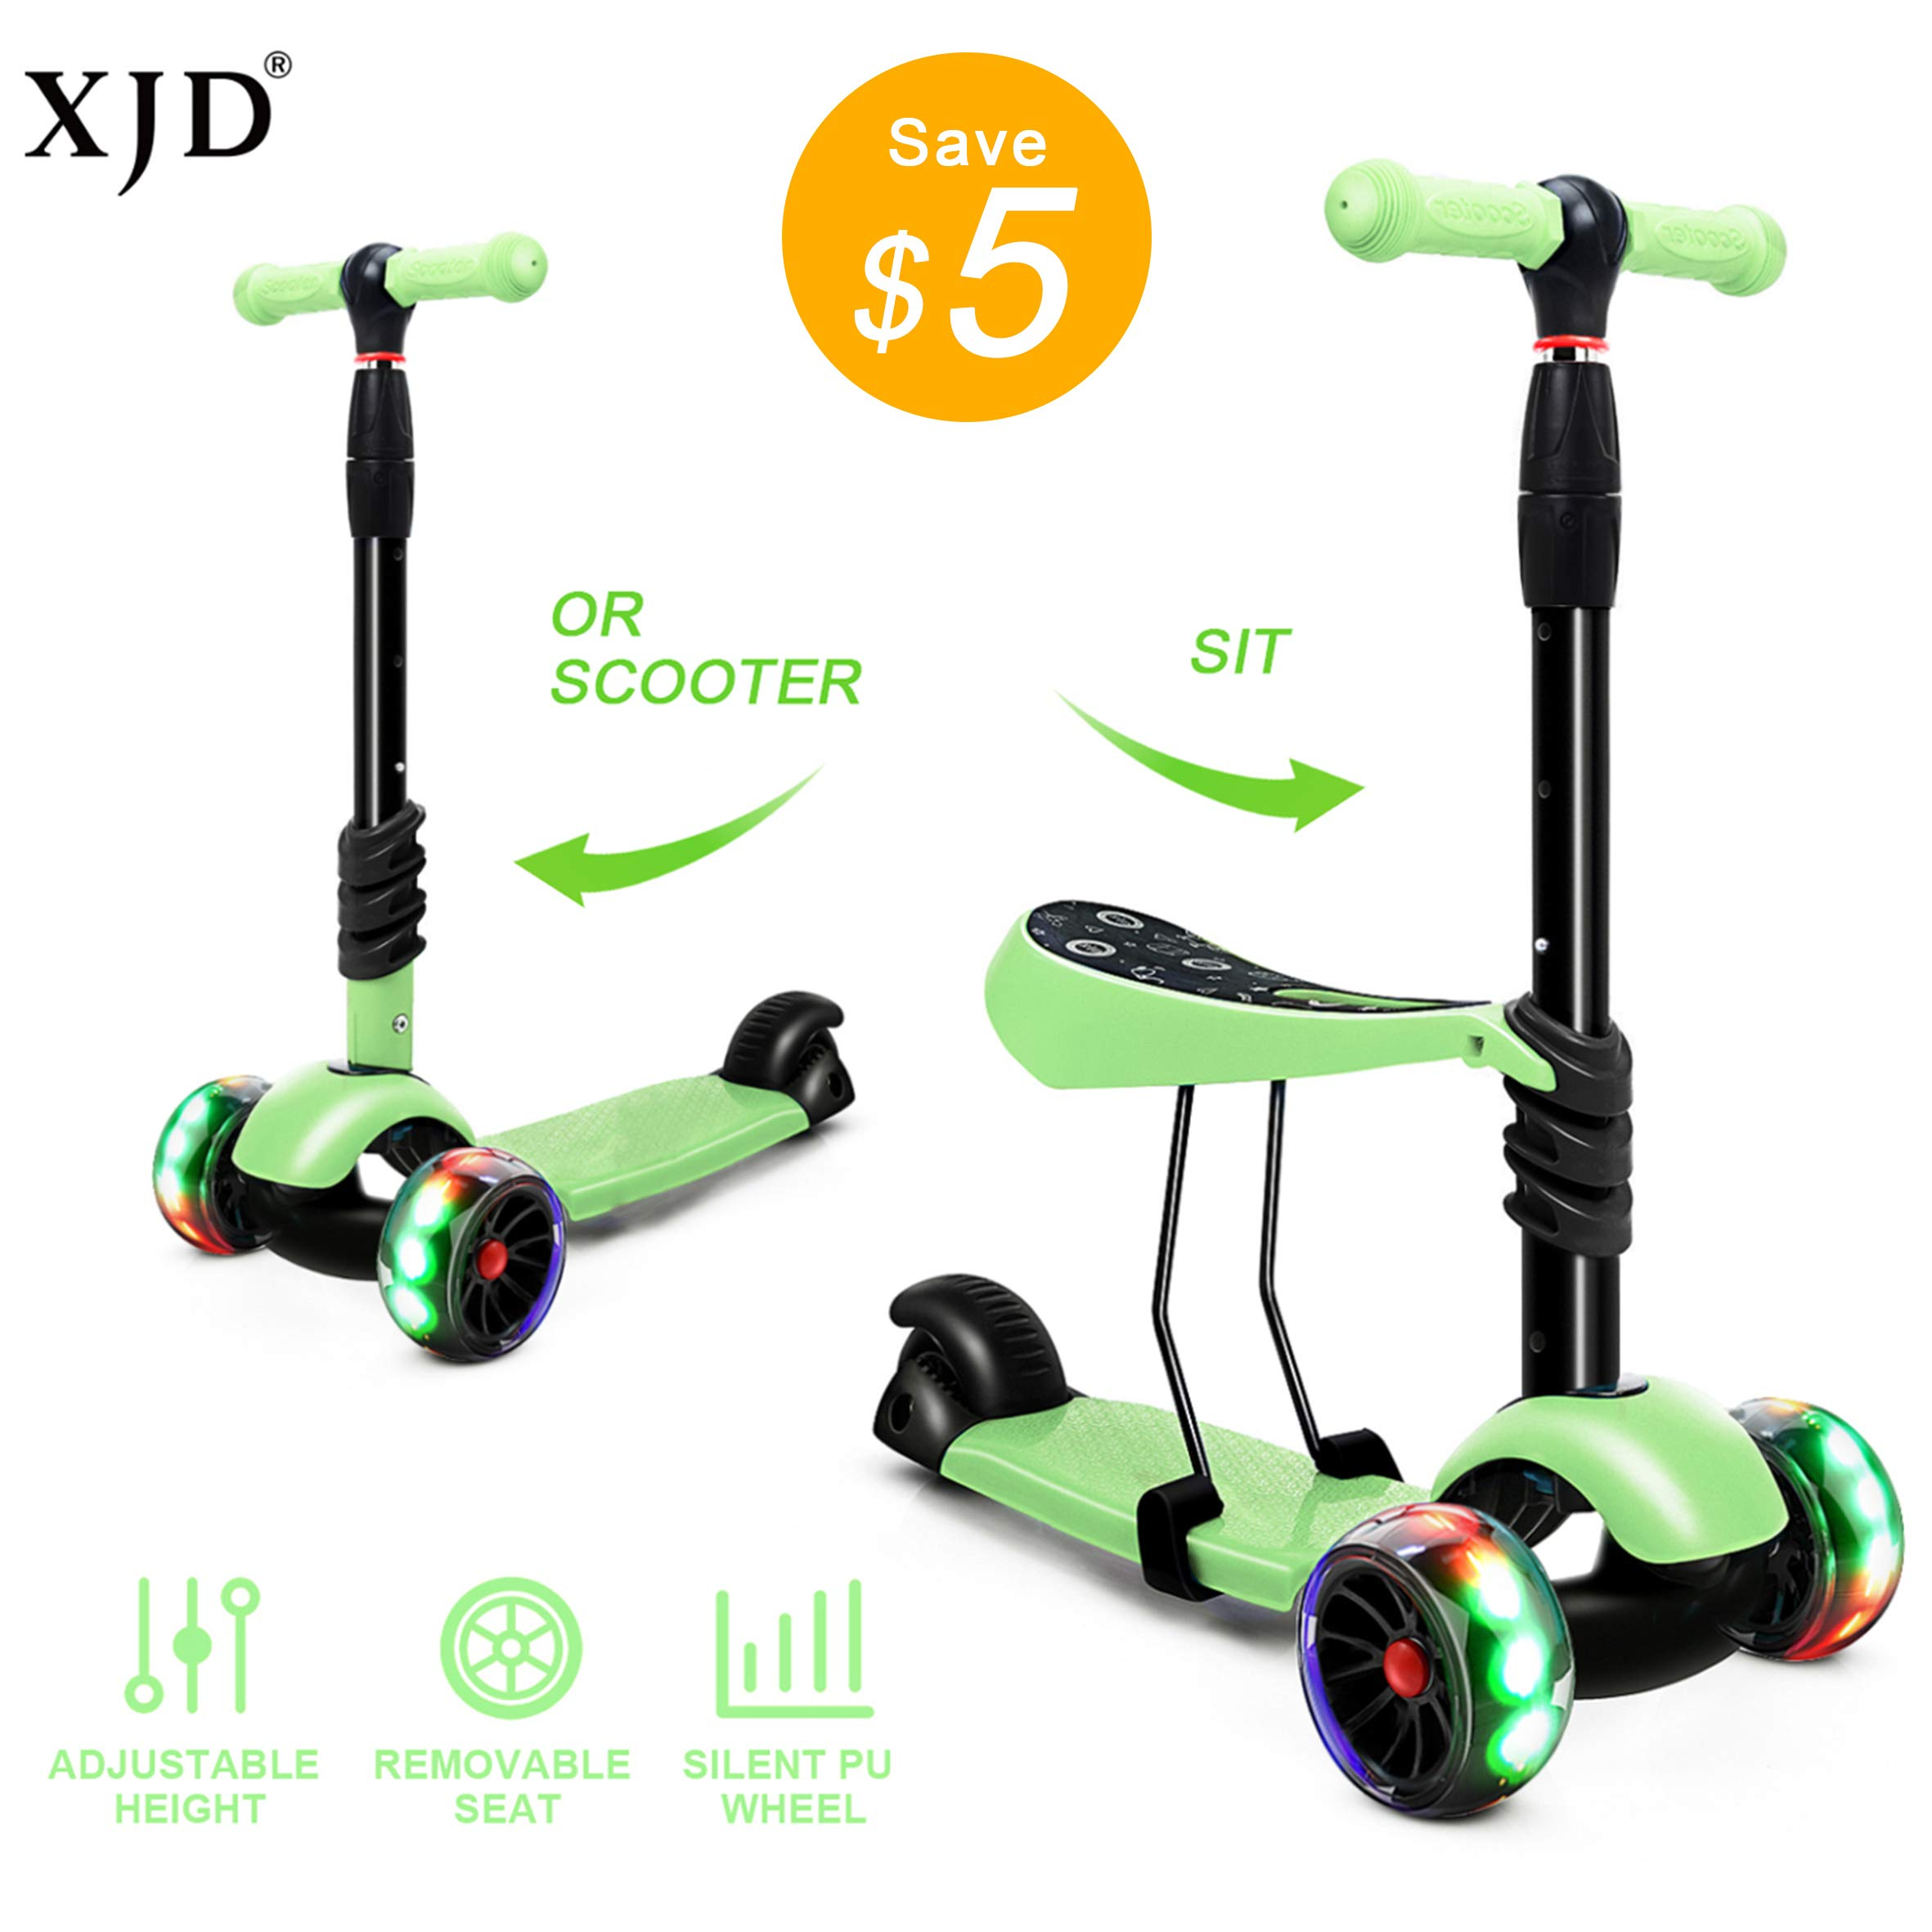 XJD 2 in 1 Scooter for Kids with Removable Seat Toddler Scooter for Boys Girls Adjustable Height PU Flashing Wheels Extra Wide Deck 3 Wheel Scooter for Children from 2 to 8 Years Old Green by XJD